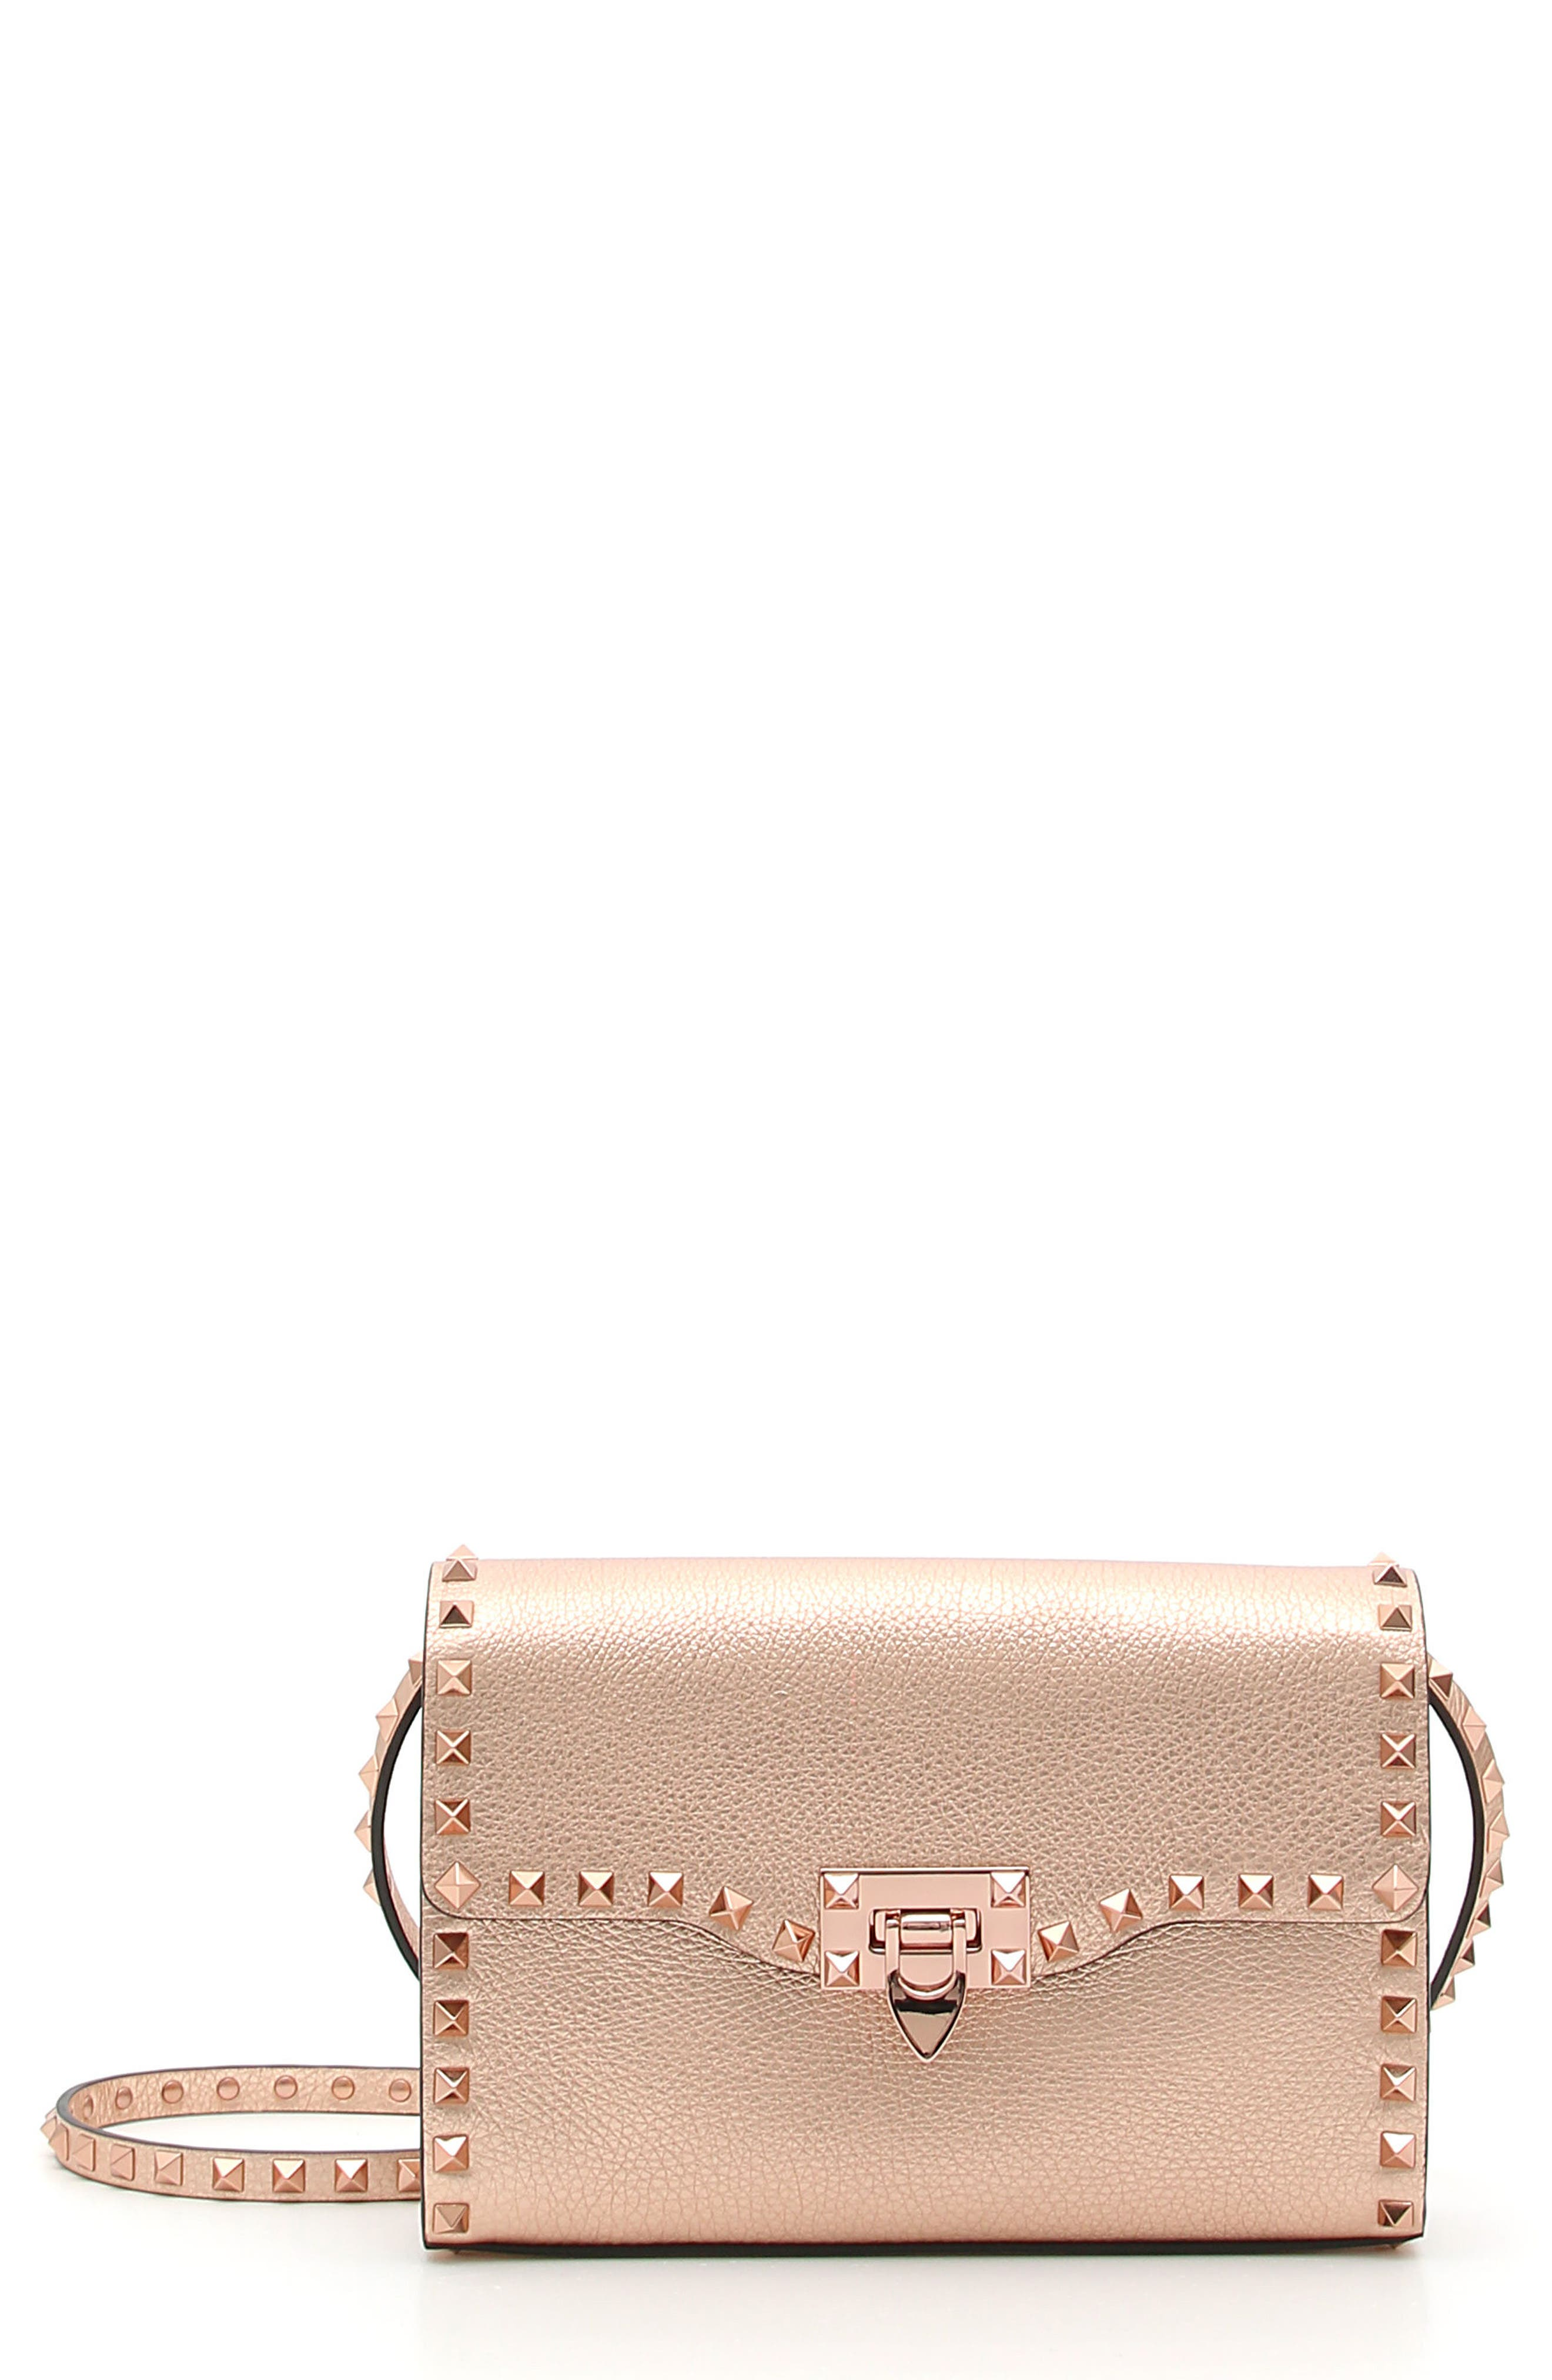 Rockstud Medium Metallic Leather Shoulder Bag,                             Main thumbnail 1, color,                             Rosegold